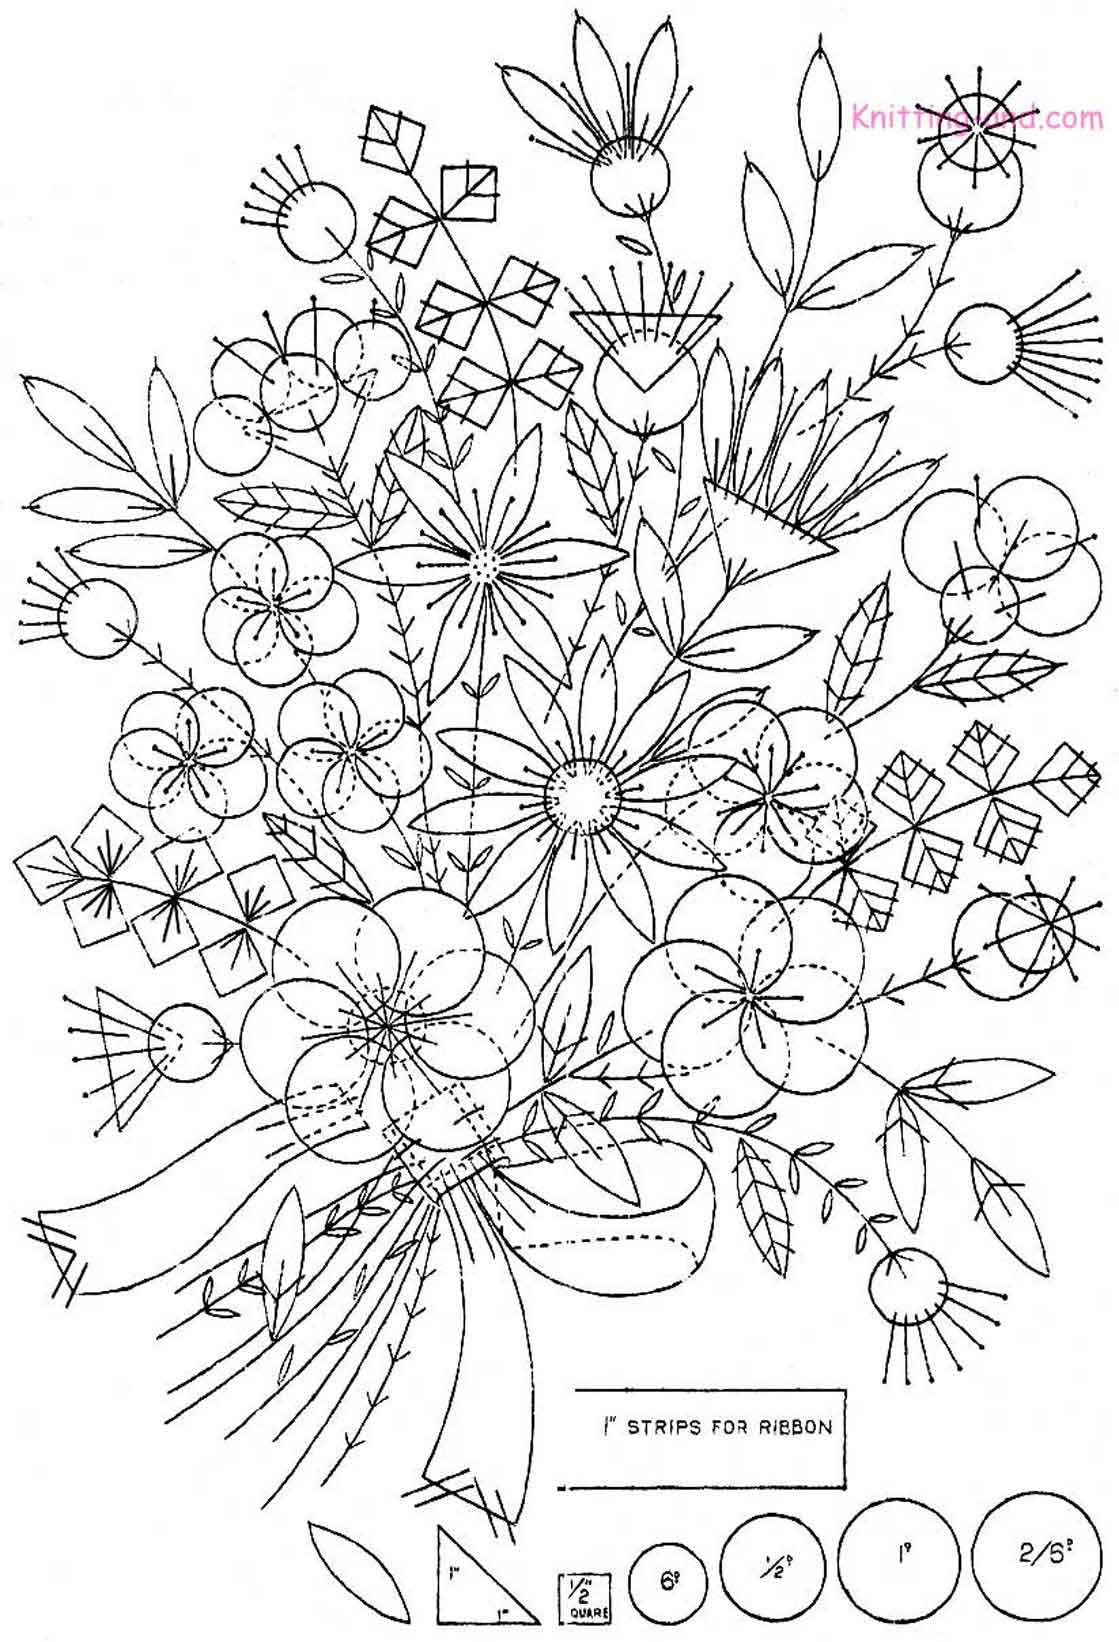 picture relating to Printable Embroidery Patterns referred to as Absolutely free Printable Hand Embroidery Models Cost-free Embroidery